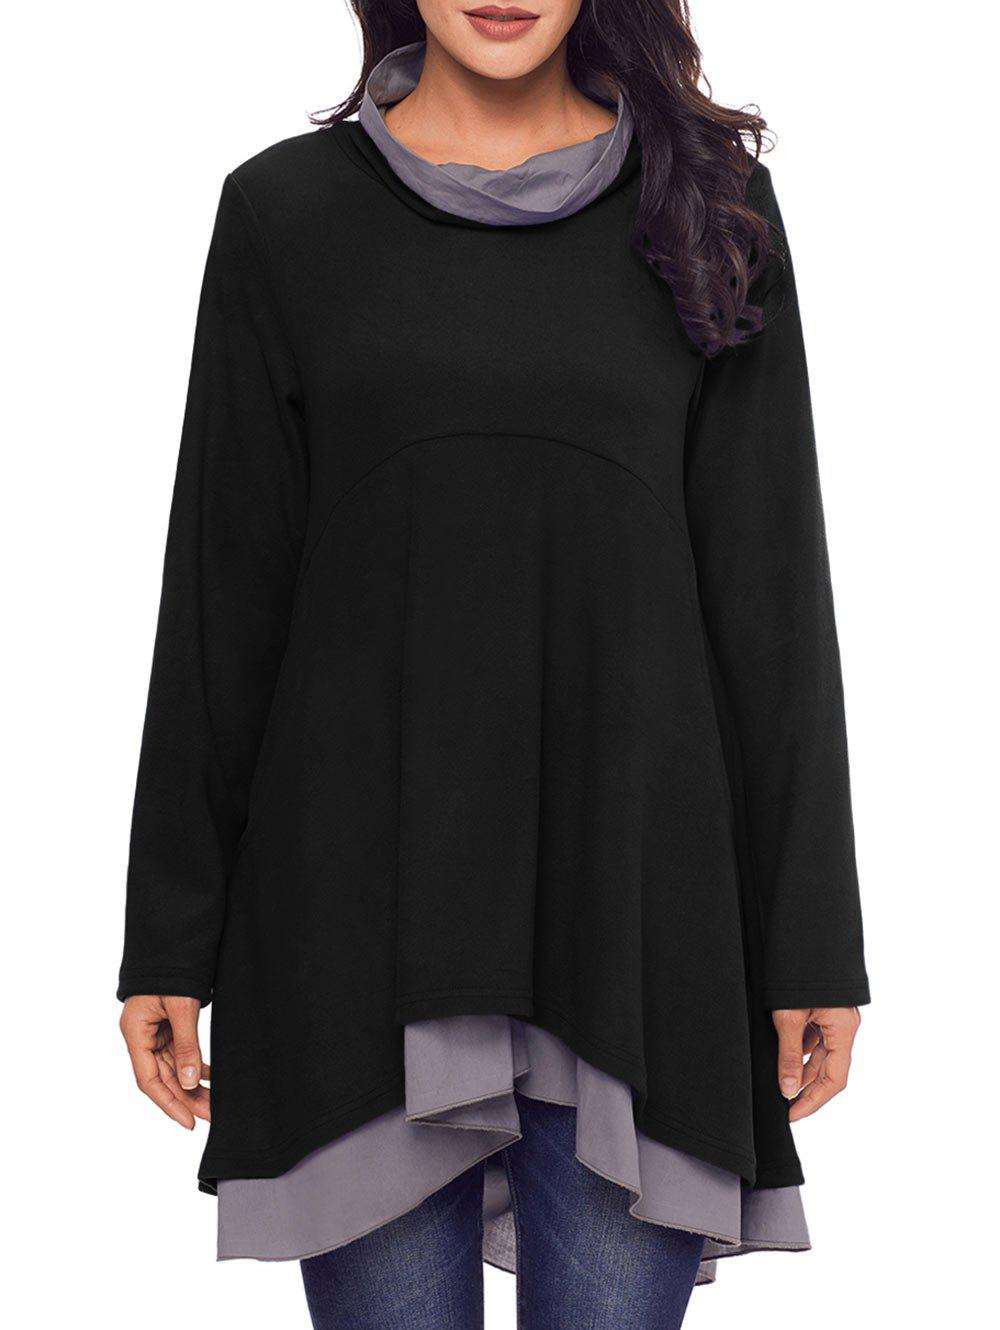 Cowl Neck High Low Tiered Tunic Top - BLACK 2XL